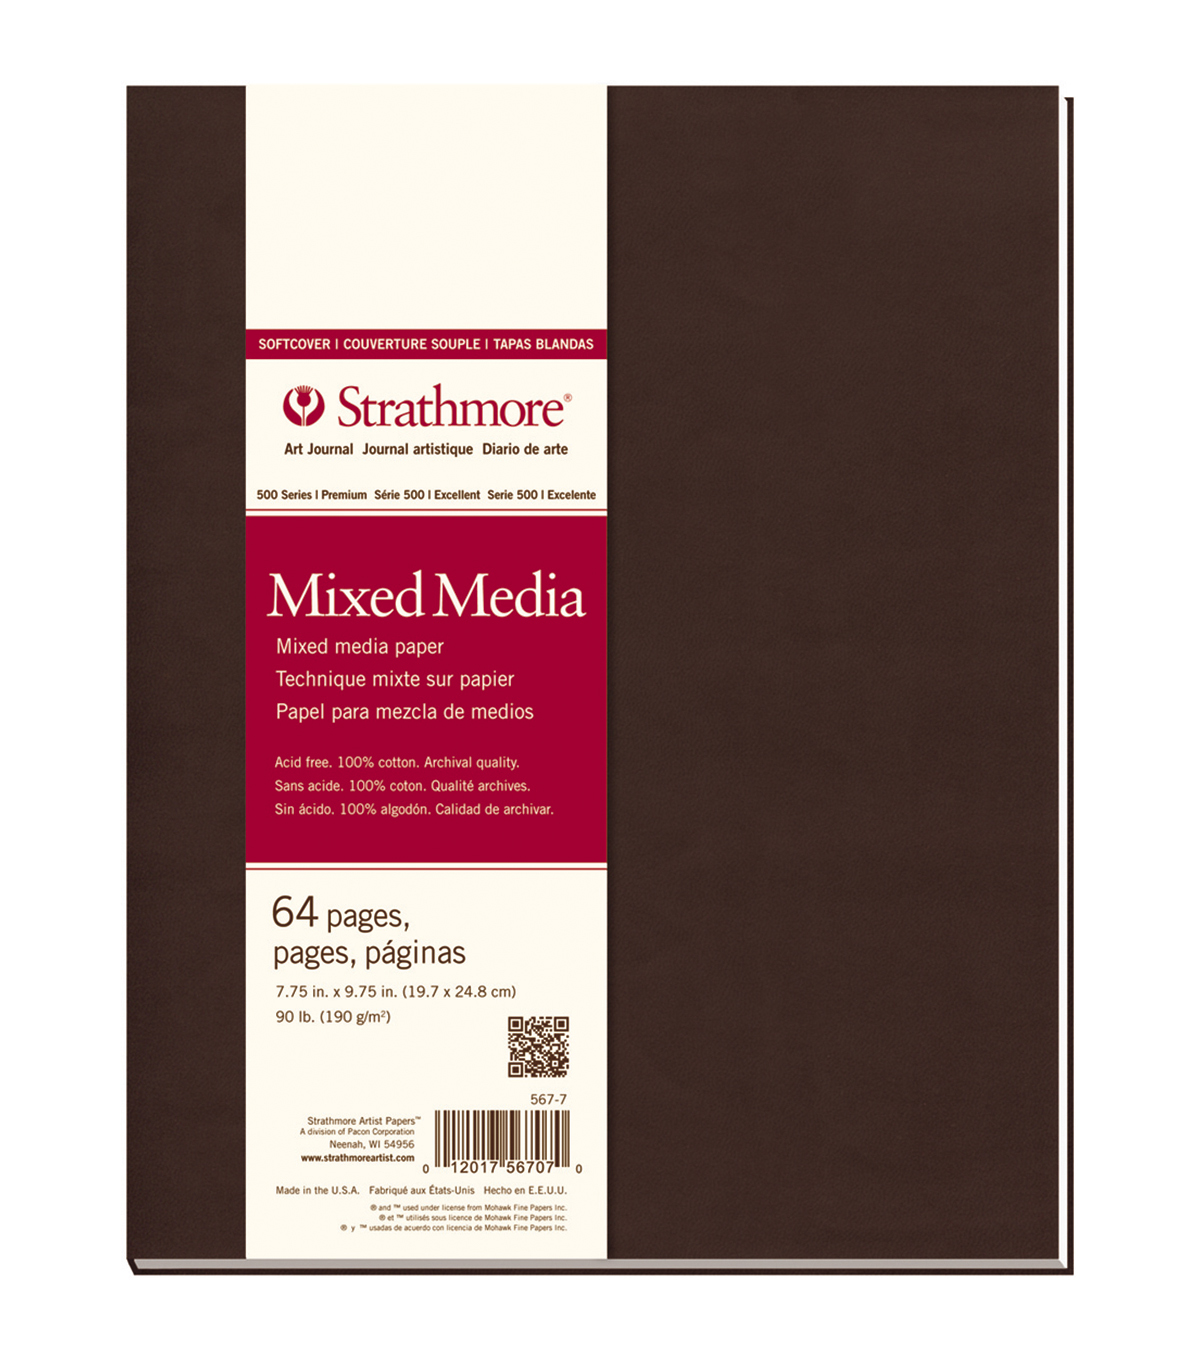 Strathmore Soft Cover Journal Book With 64 Pages 7.75''x9.75''